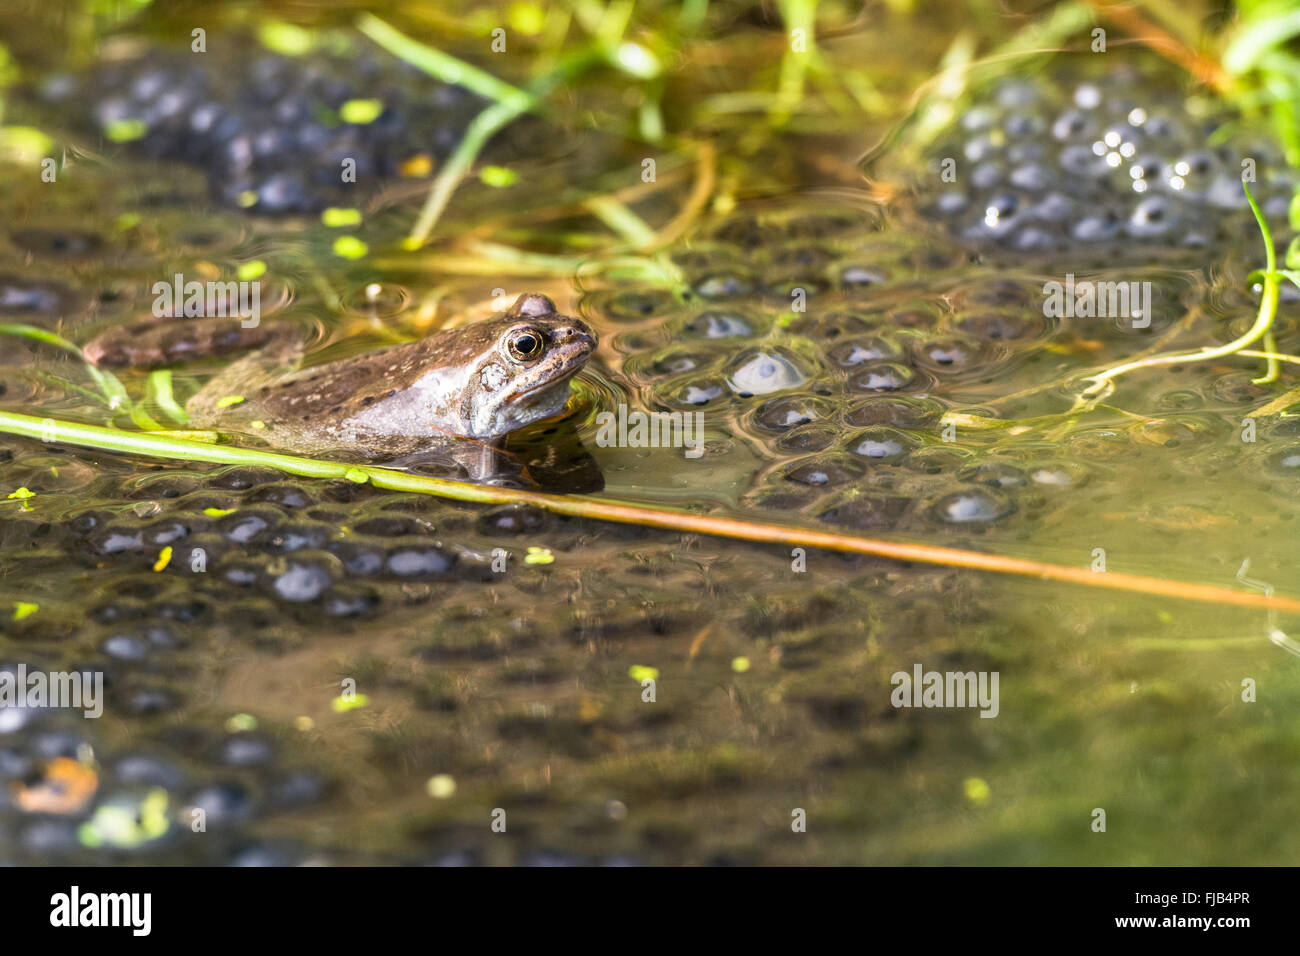 Common European Frog (Rana Temporaria) with spawn in grassy pool of water (taken in Wicklow, Ireland) - Stock Image